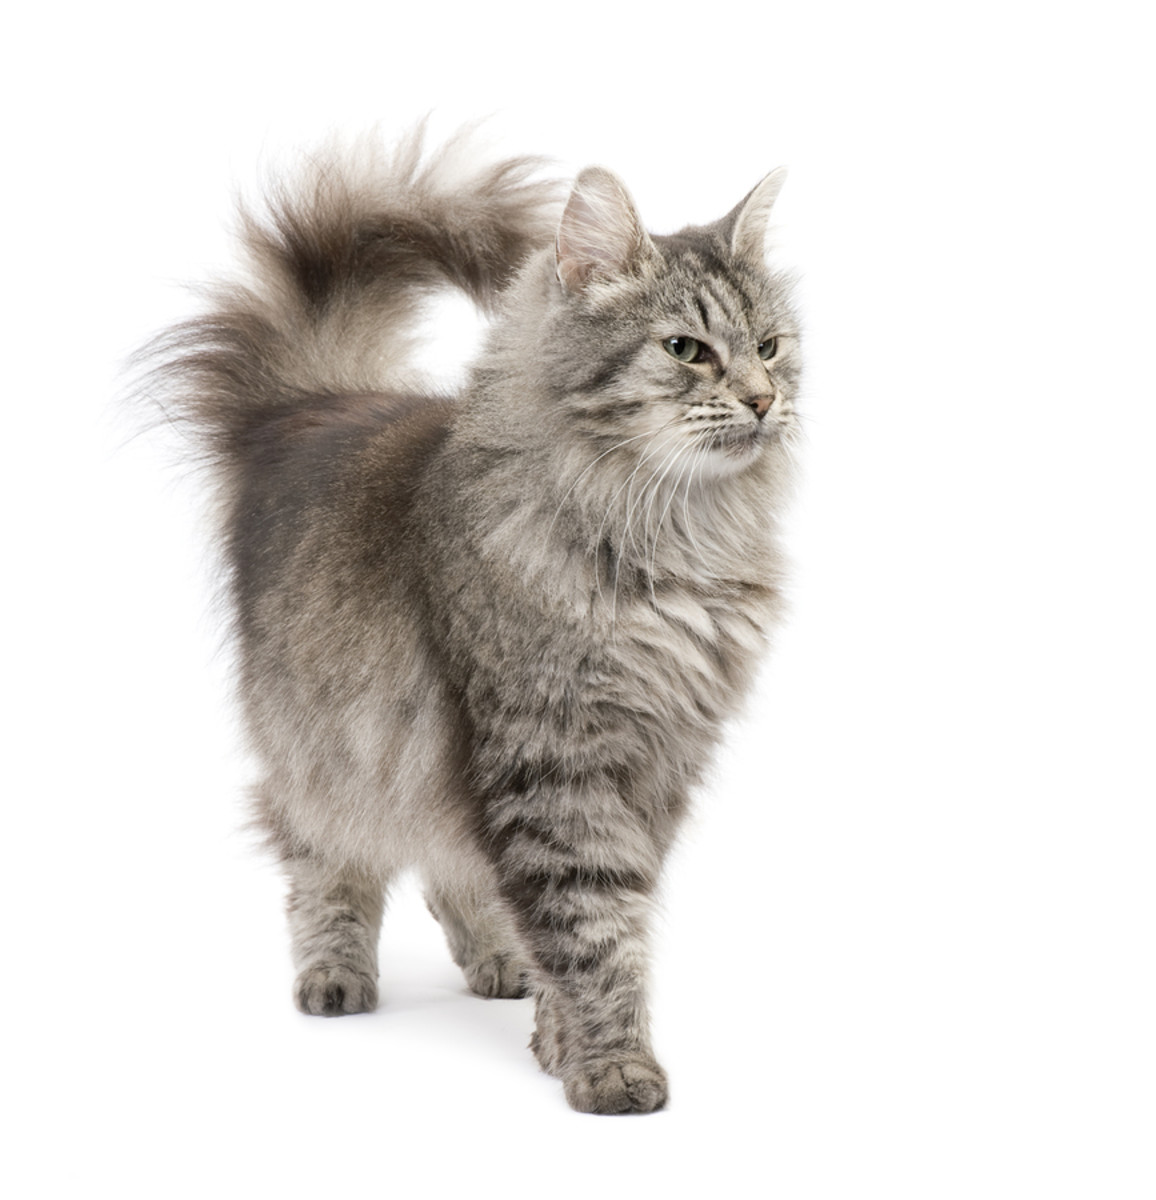 This cat's tail is in the question-mark position. He is happy and playful!